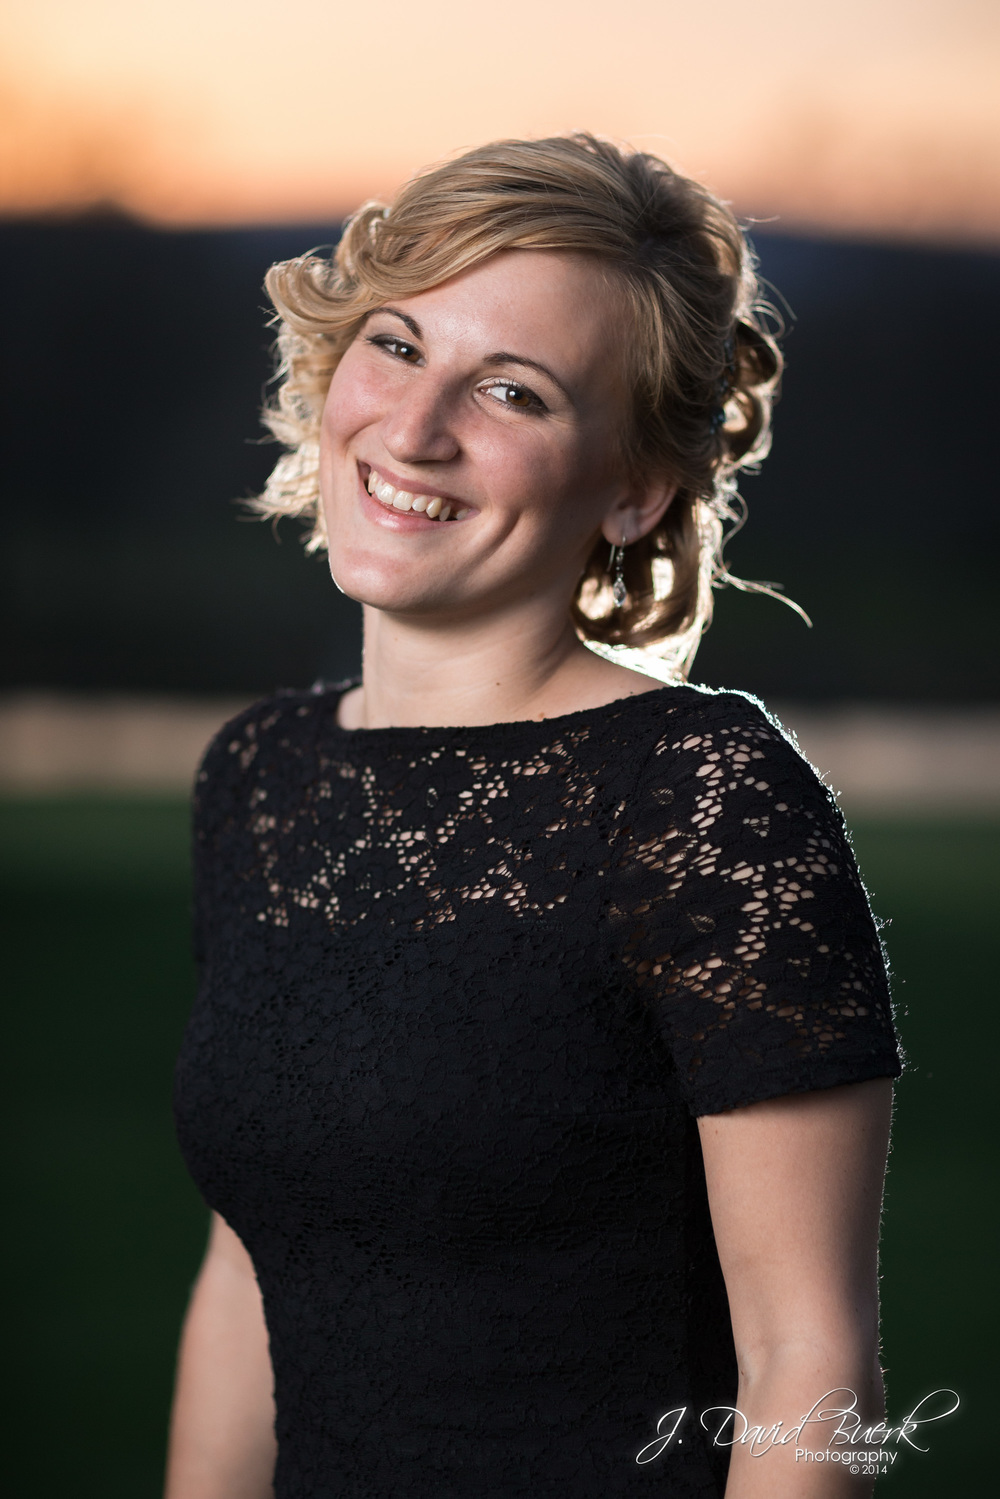 A maid of honor smiles for a test shot as I set up my lighting at sunset during a wedding.